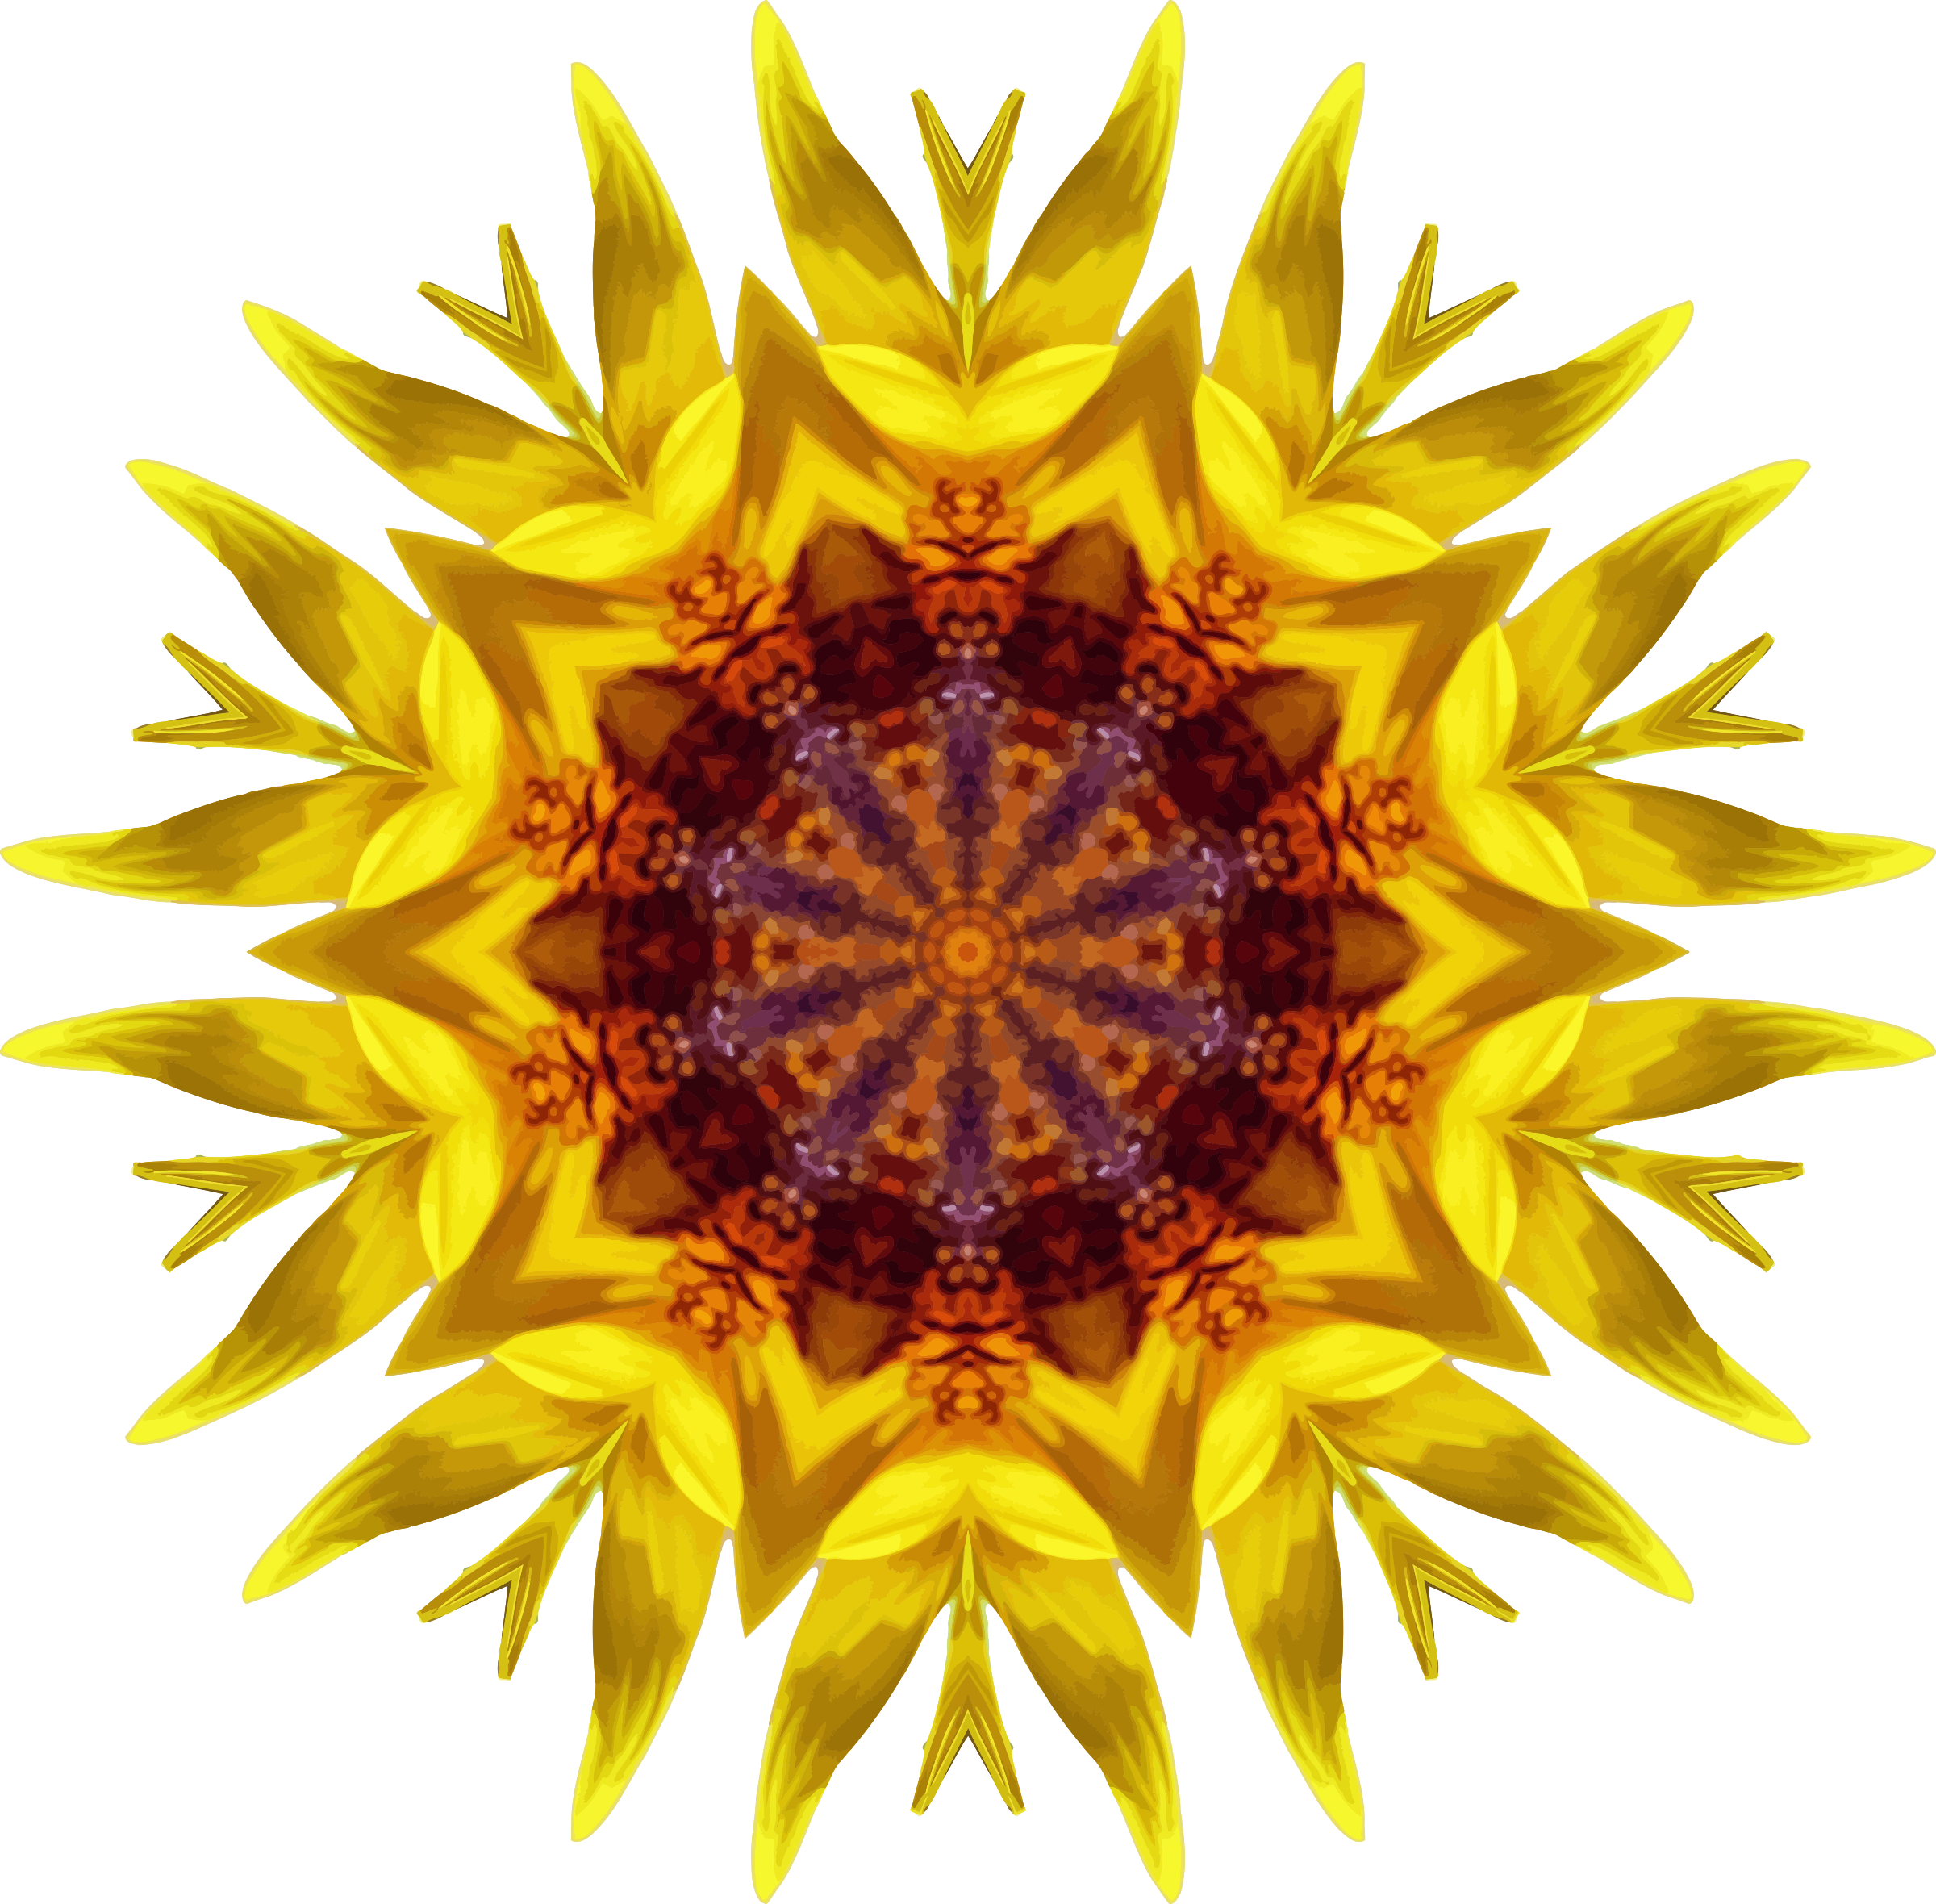 Sunflower kaleidoscope 18 by Firkin